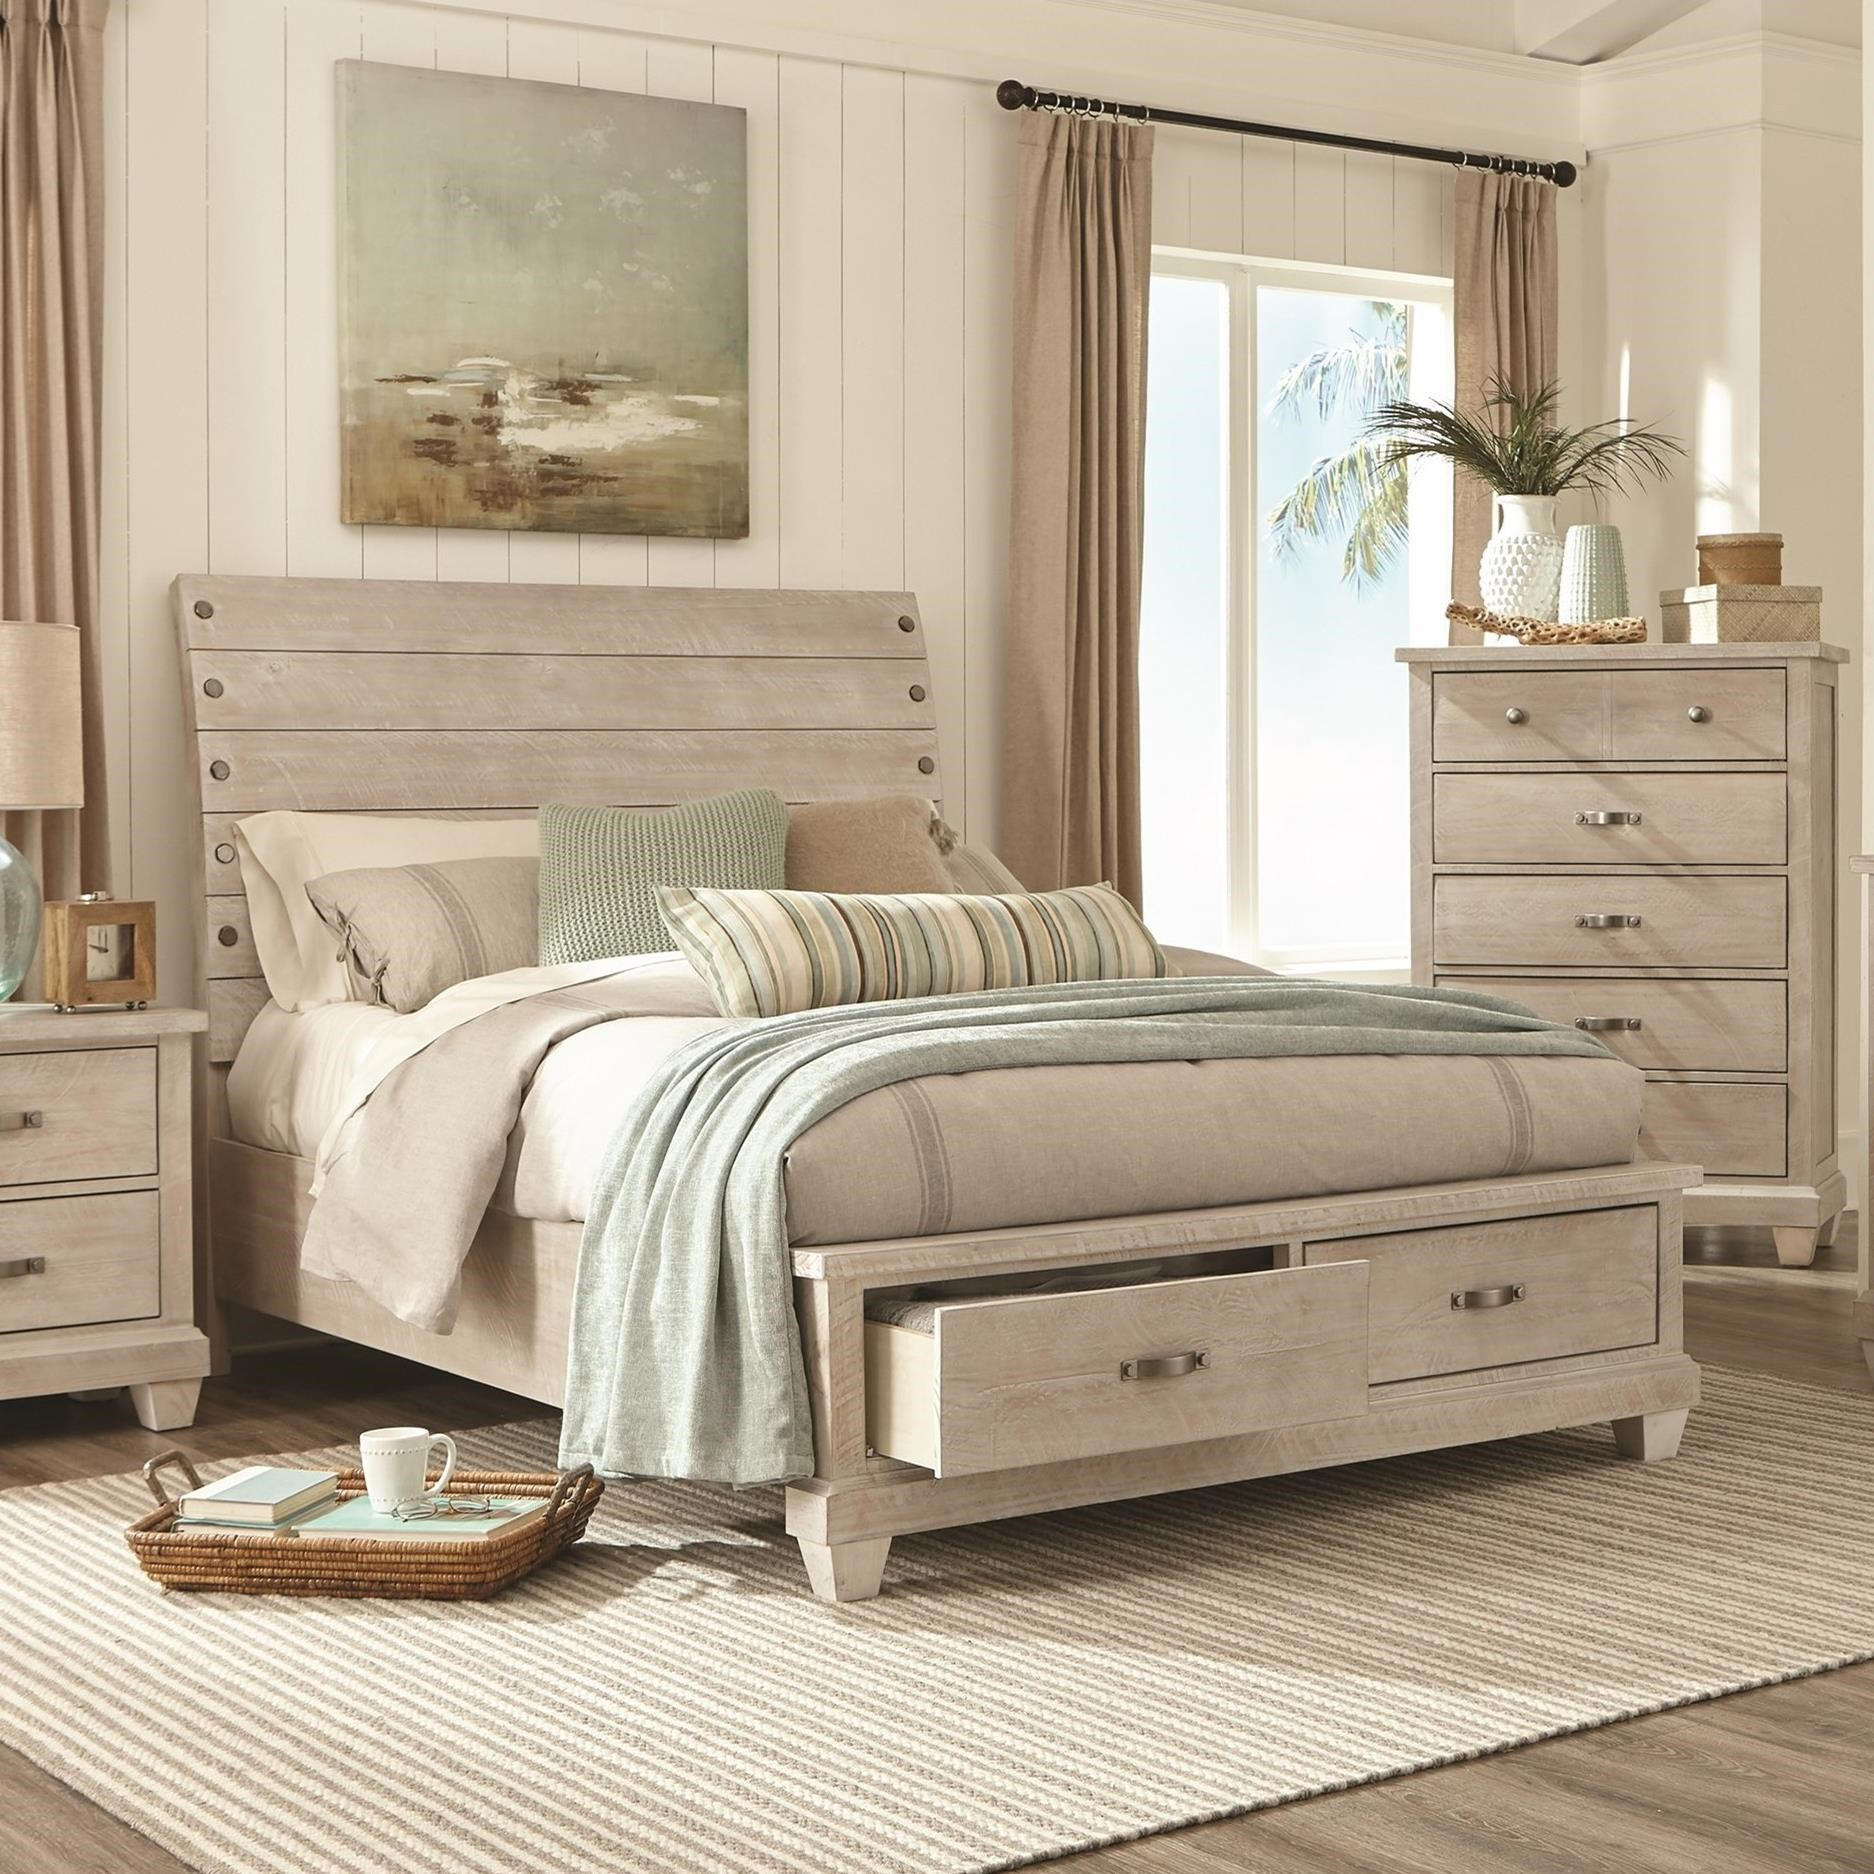 C7131W Queen Sleigh Bed by Lifestyle at Beck's Furniture